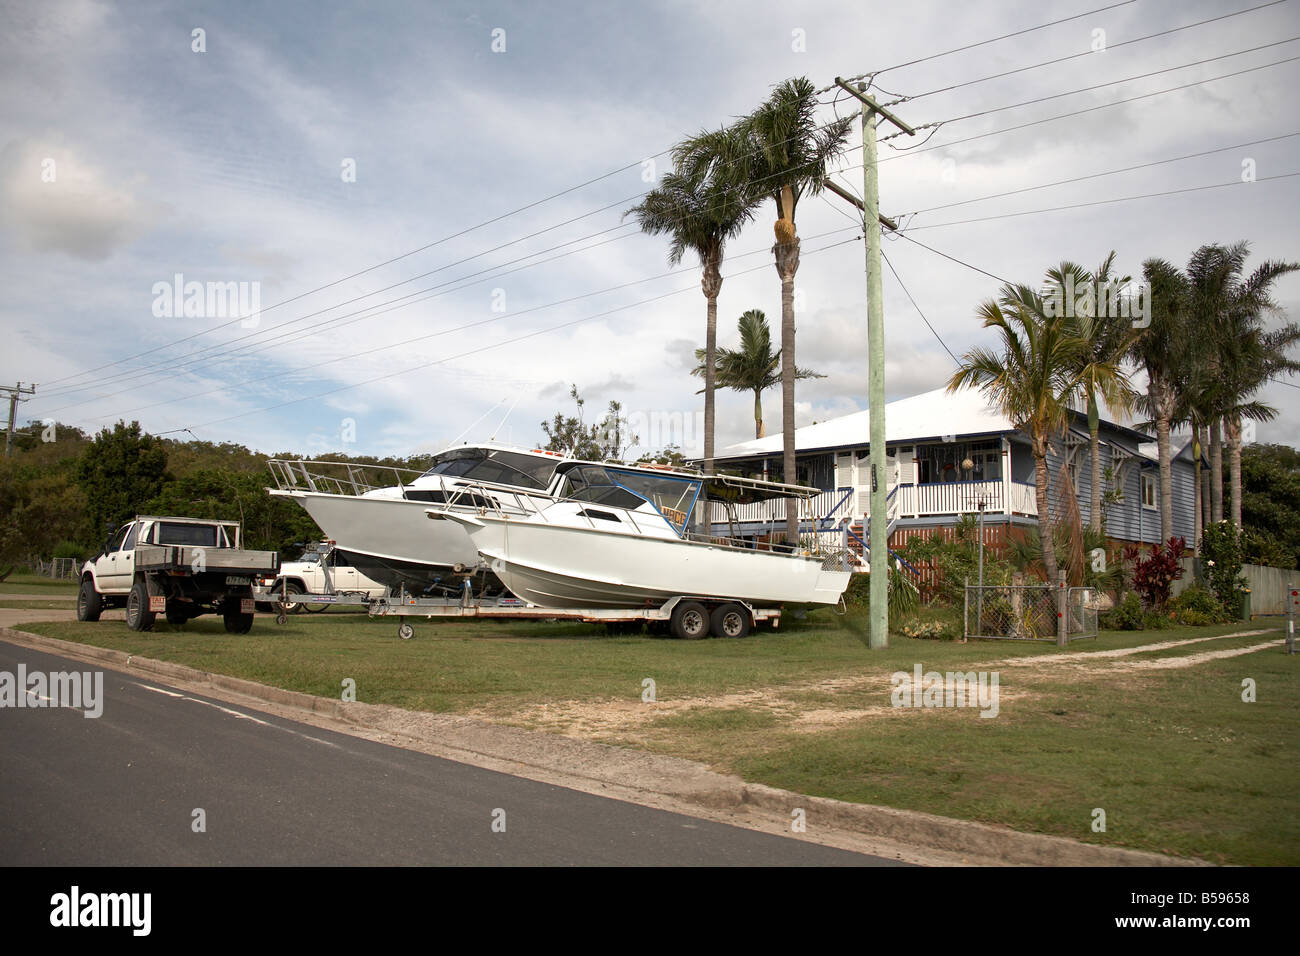 House and boats or with palm trees on Stradbroke Island Queensland QLD Australia - Stock Image